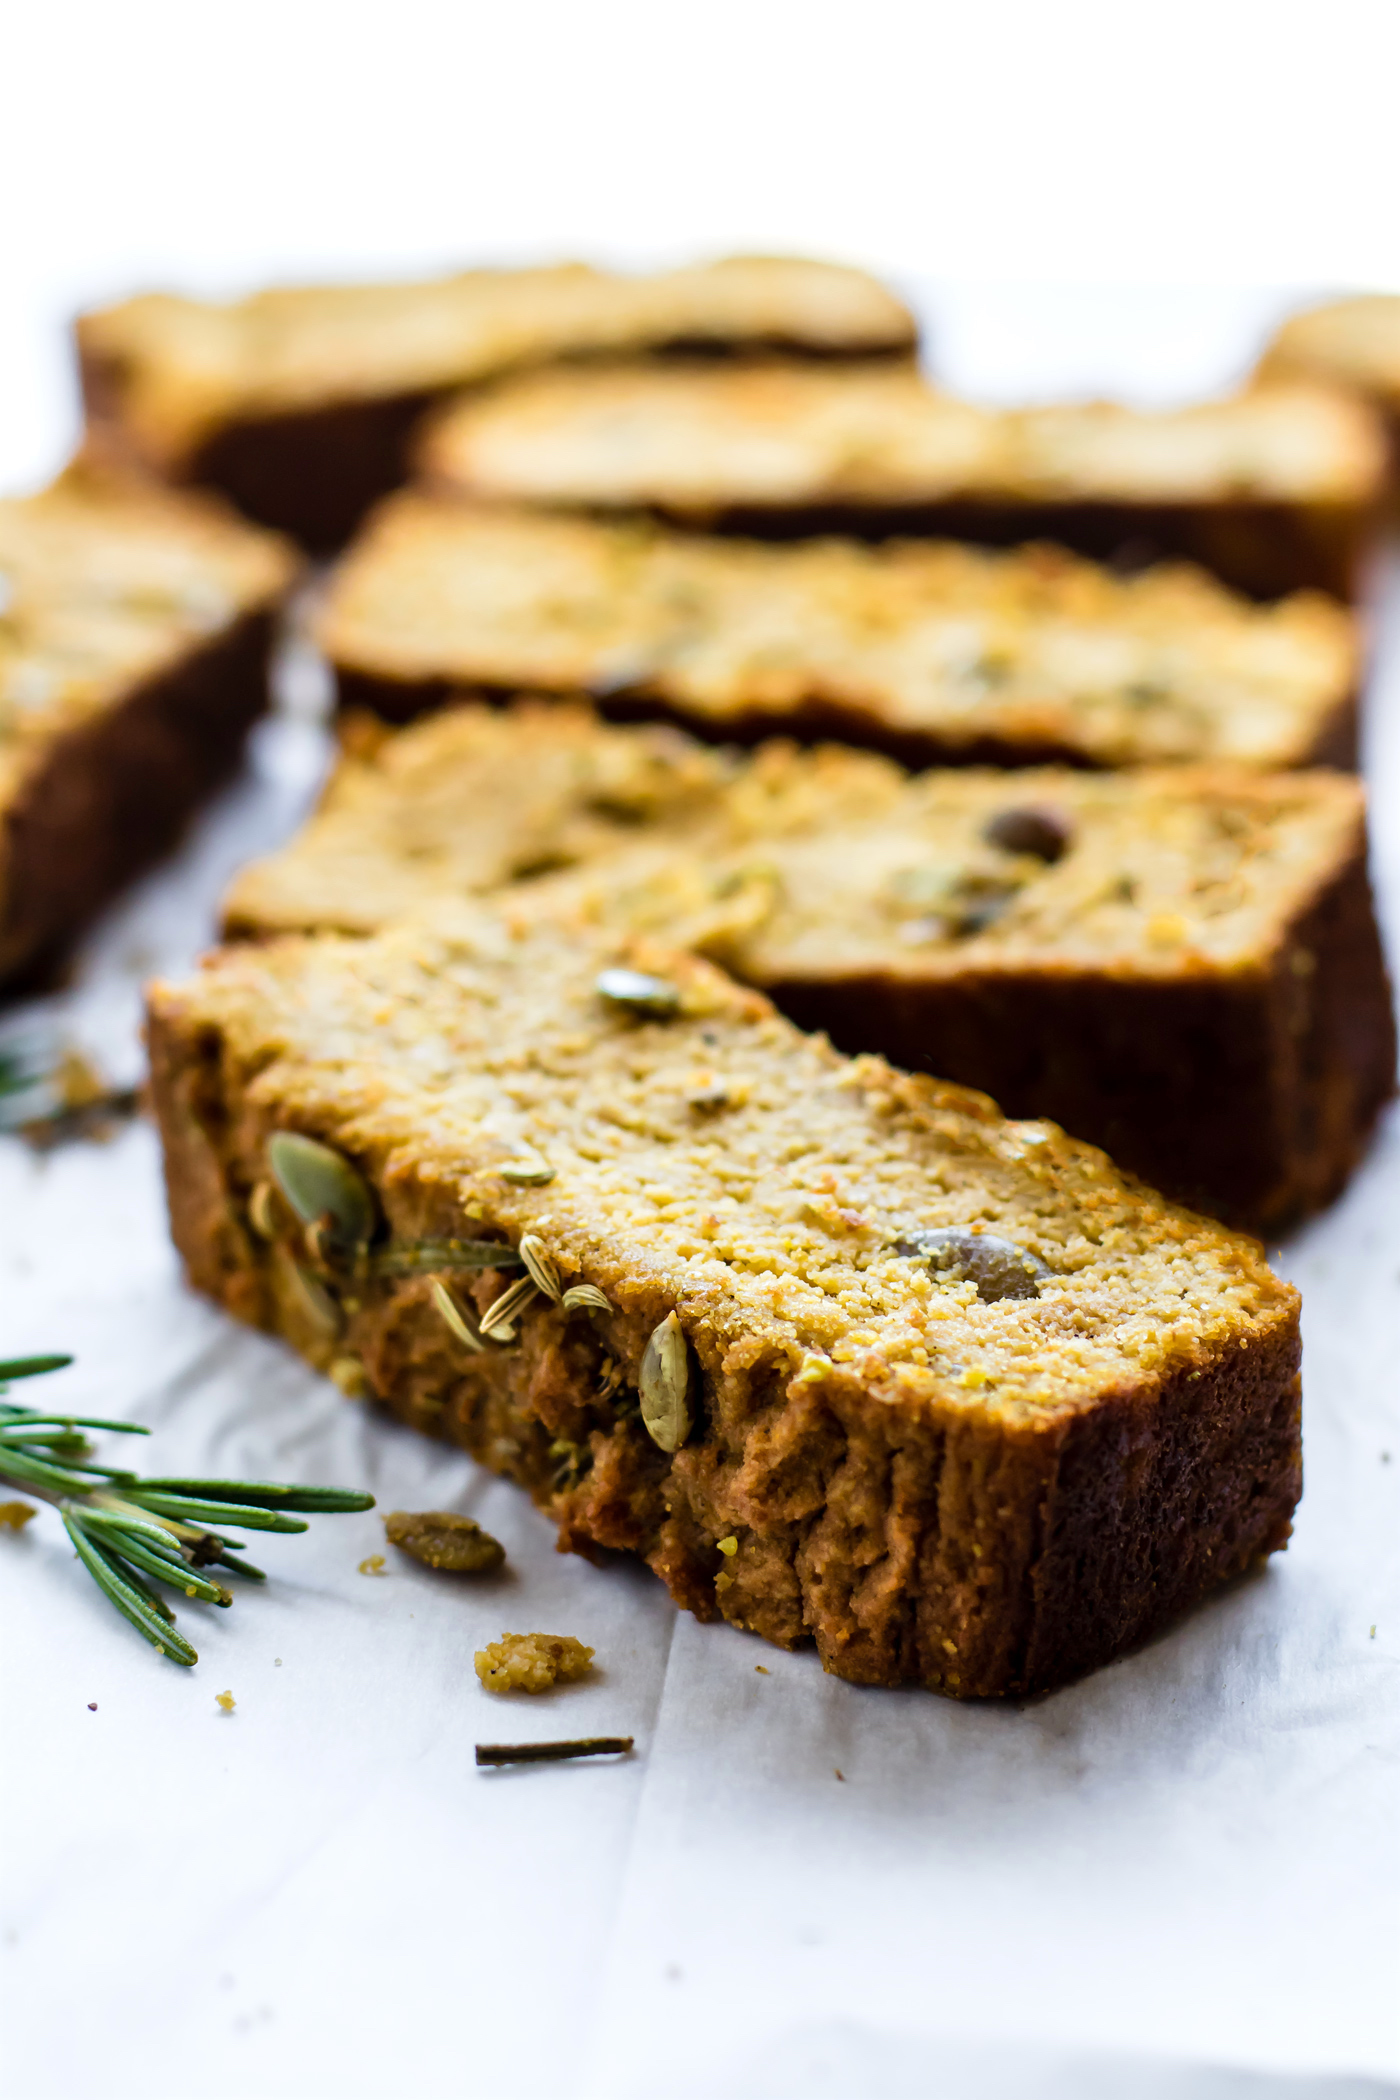 Rosemary PALEO PUMPKIN BREAD with pumpkin seeds! Have you tried savory Pumpkin Bread? It's simple to make and delicious! This Rosemary paleo pumpkin bread is the perfect healthy accompaniment to any soup or chili.